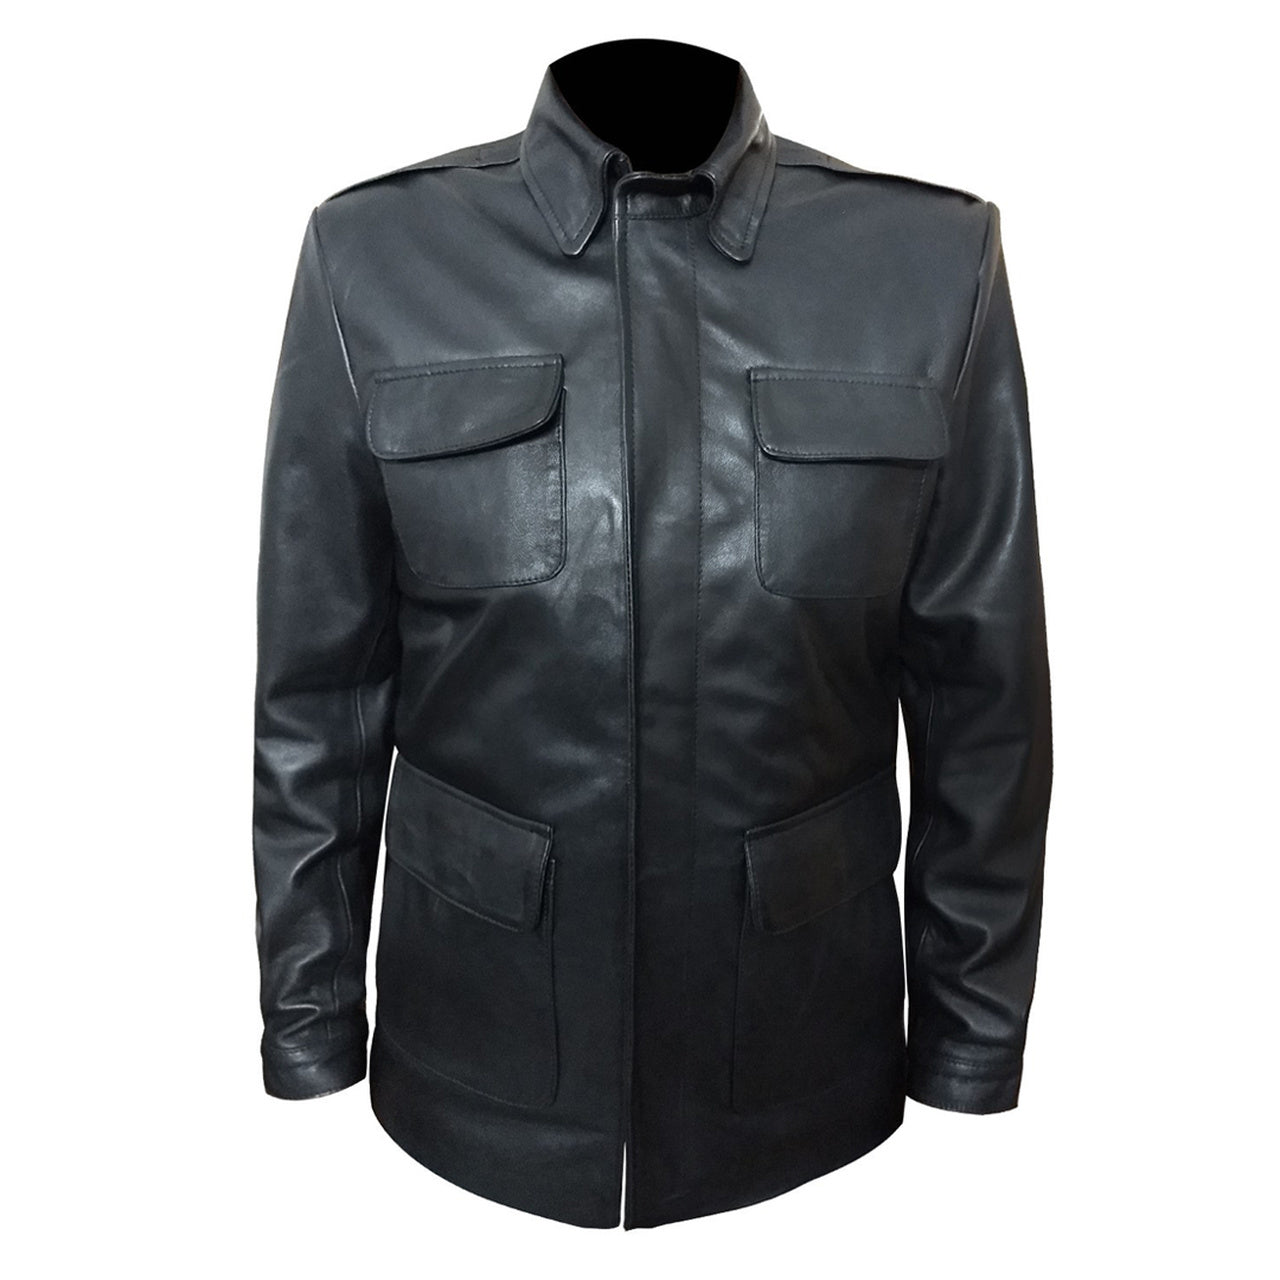 Classic Motorcycle Style Geniune Men Leather Jacket In Black